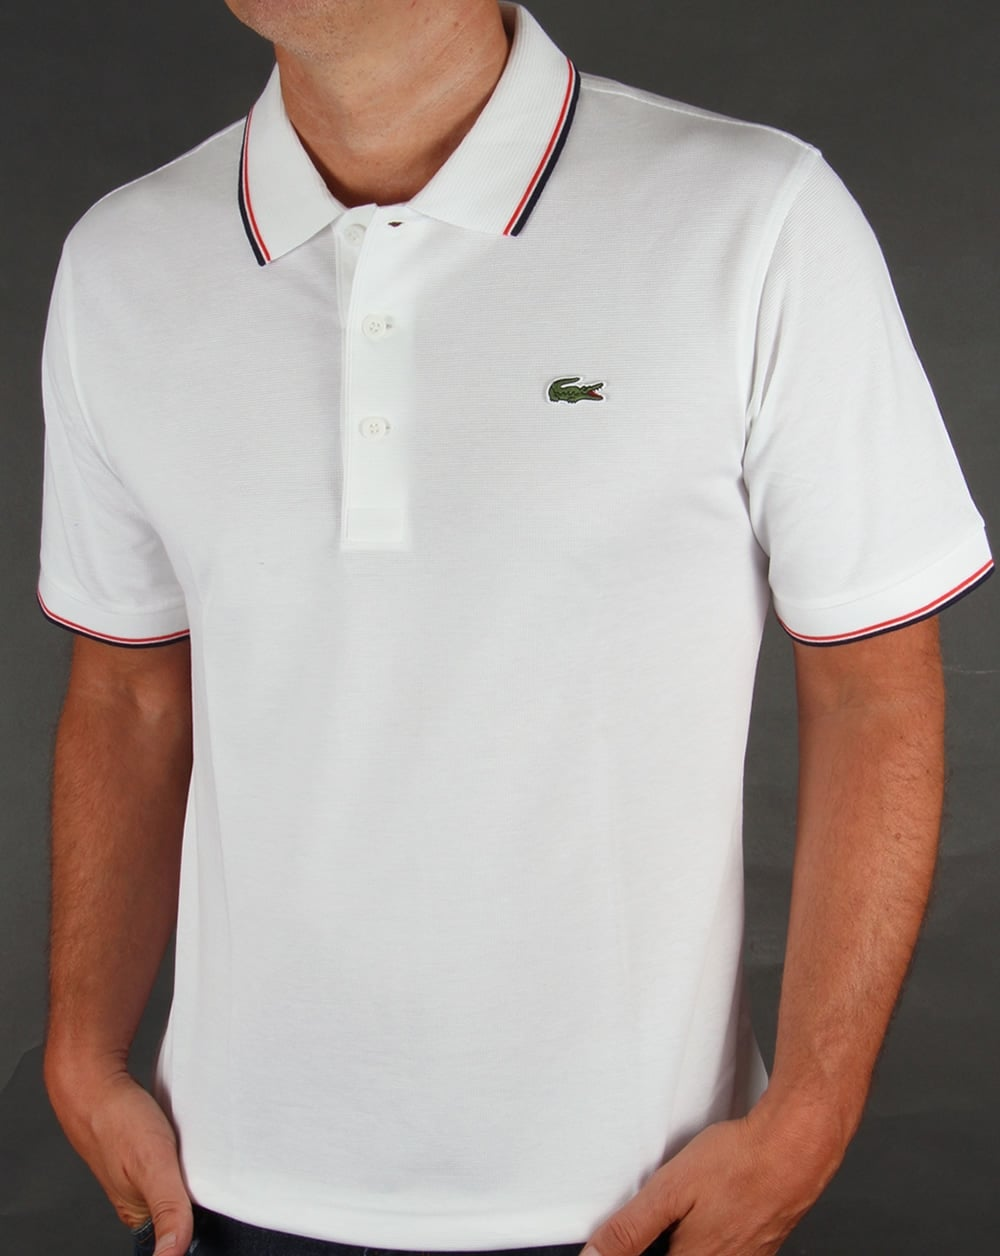 151efb4e409cf Lacoste Lacoste Tipped Polo Shirt White Red